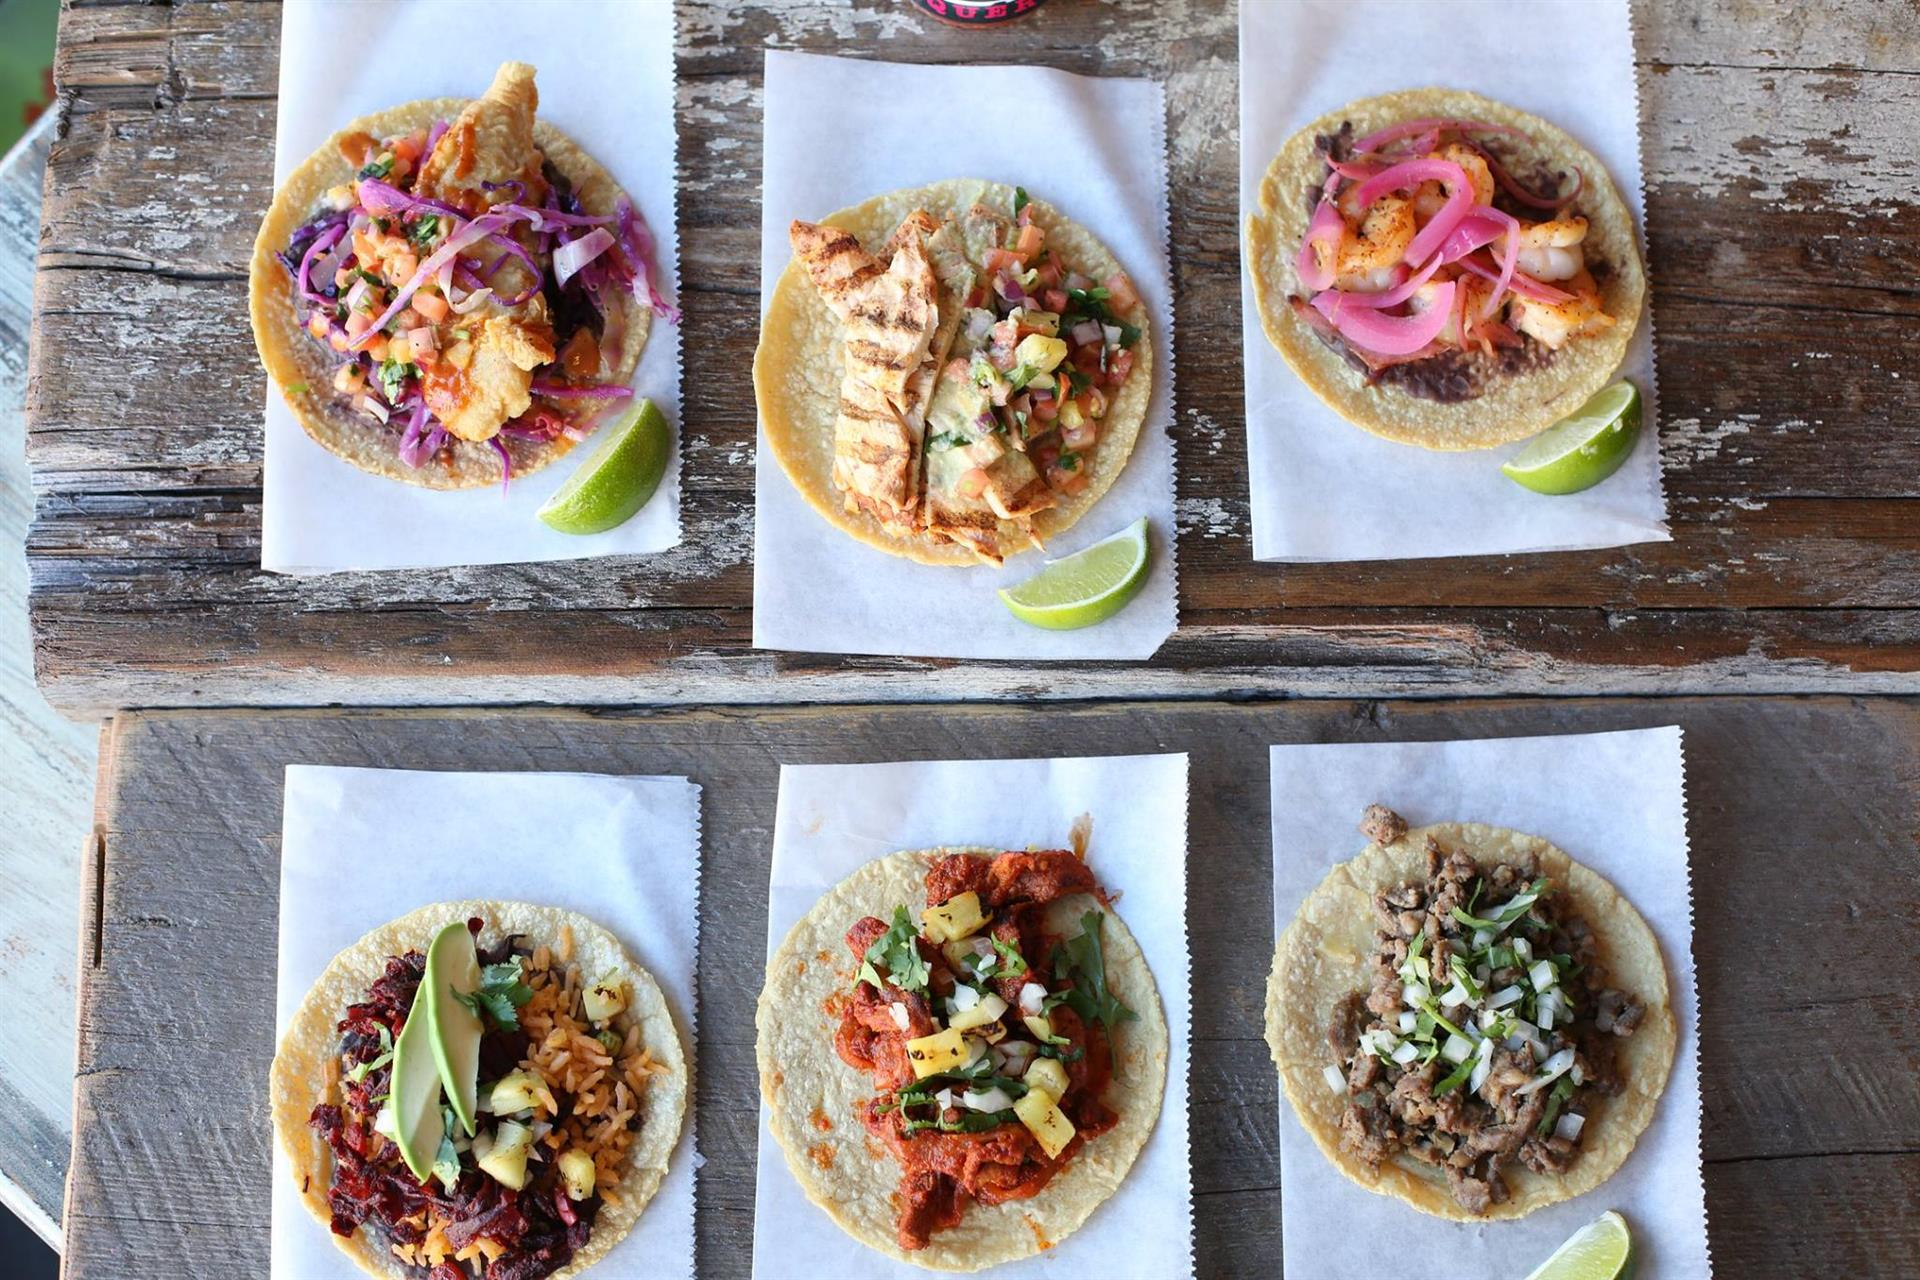 assortment of Tacos on a table